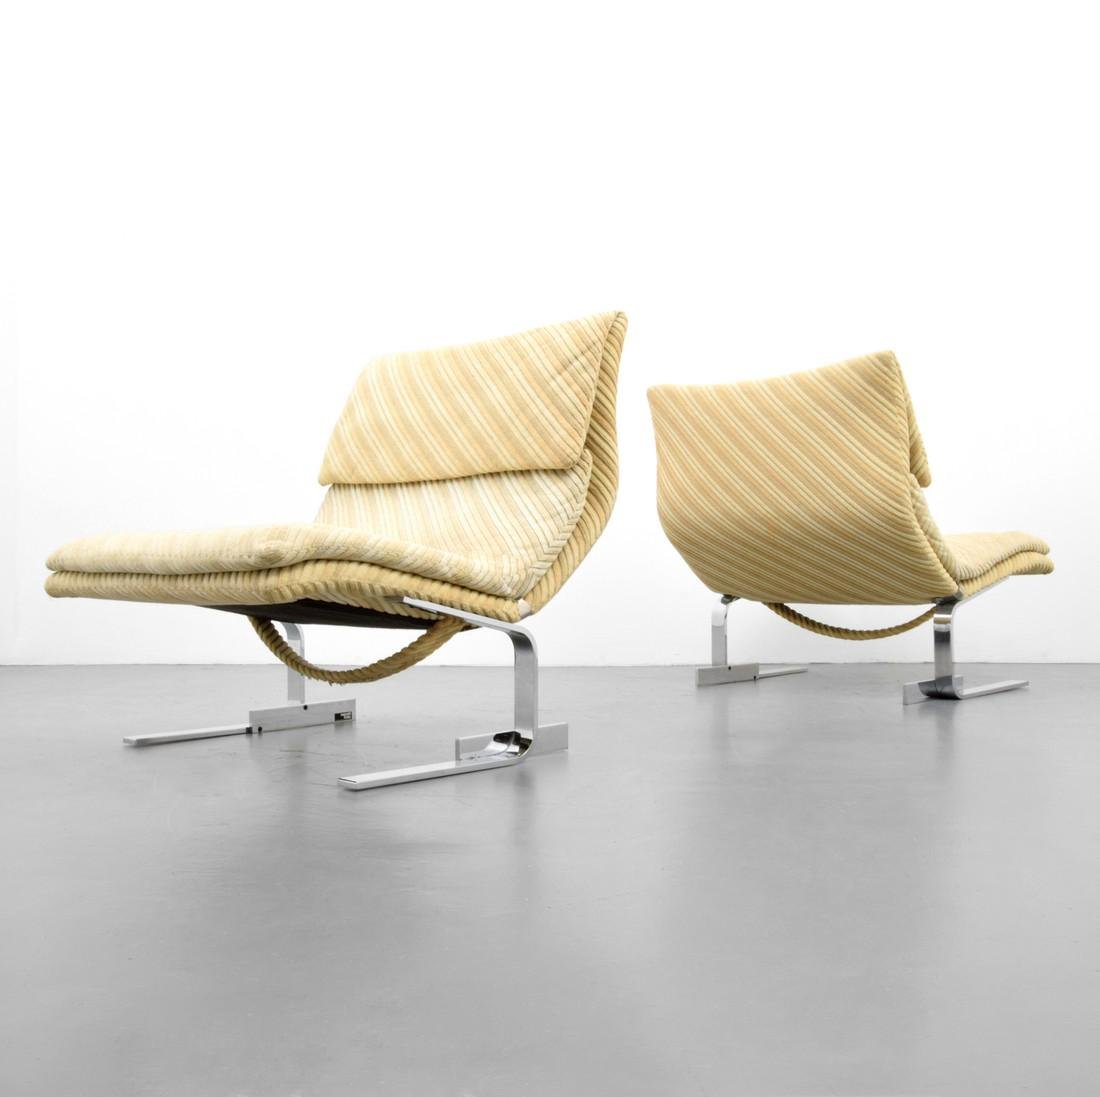 Pair of Giovanni Offredi WAVE / ONDA Lounge Chairs